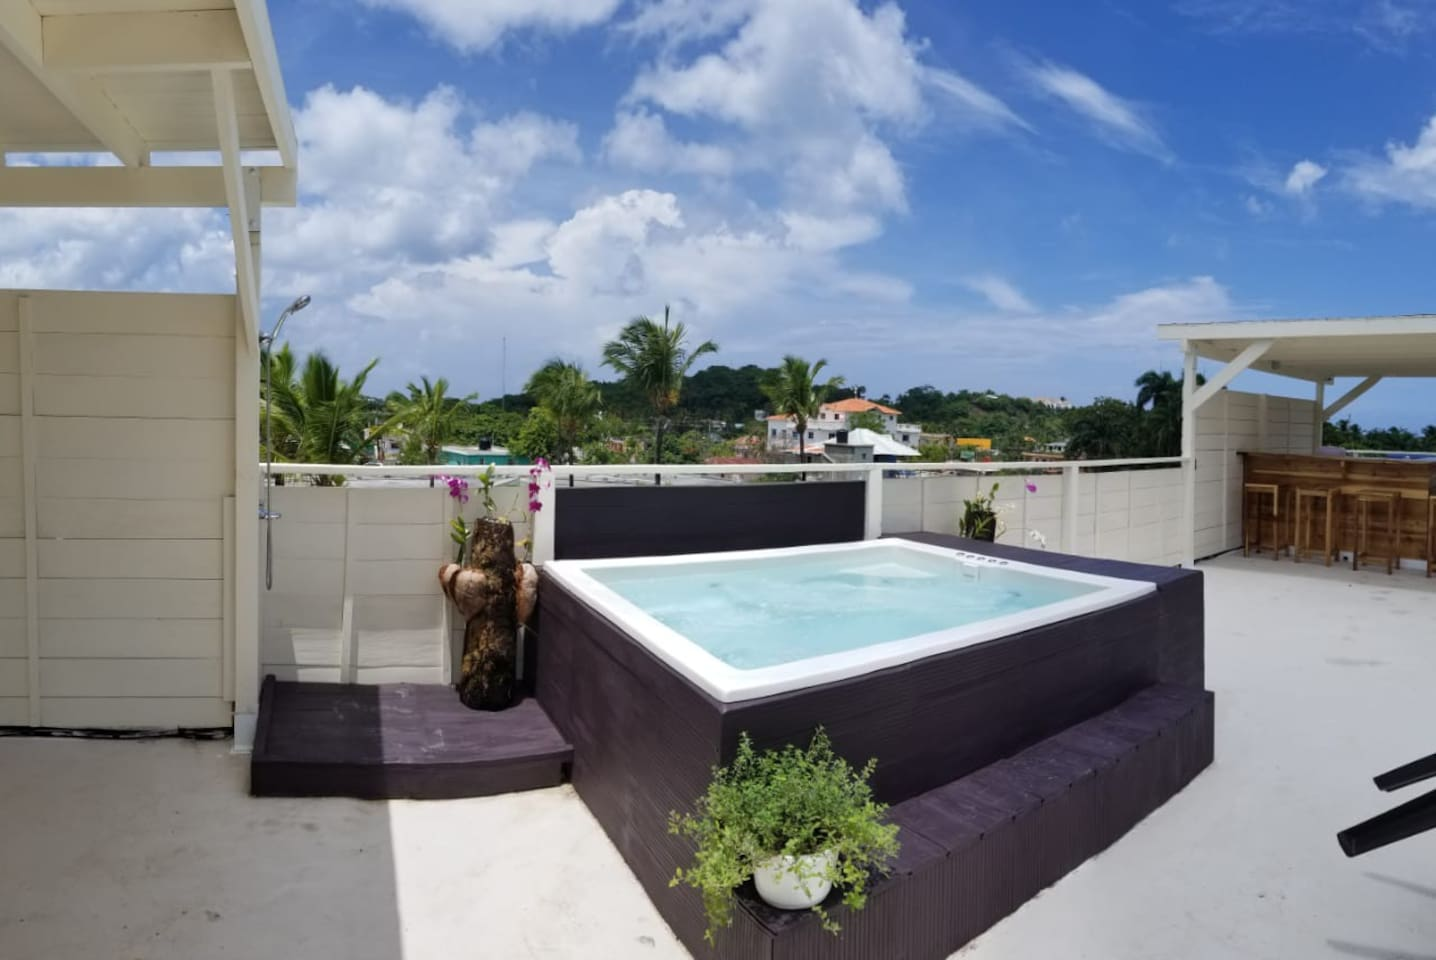 JACUZZI ON THE PANORAMIC TERRACE